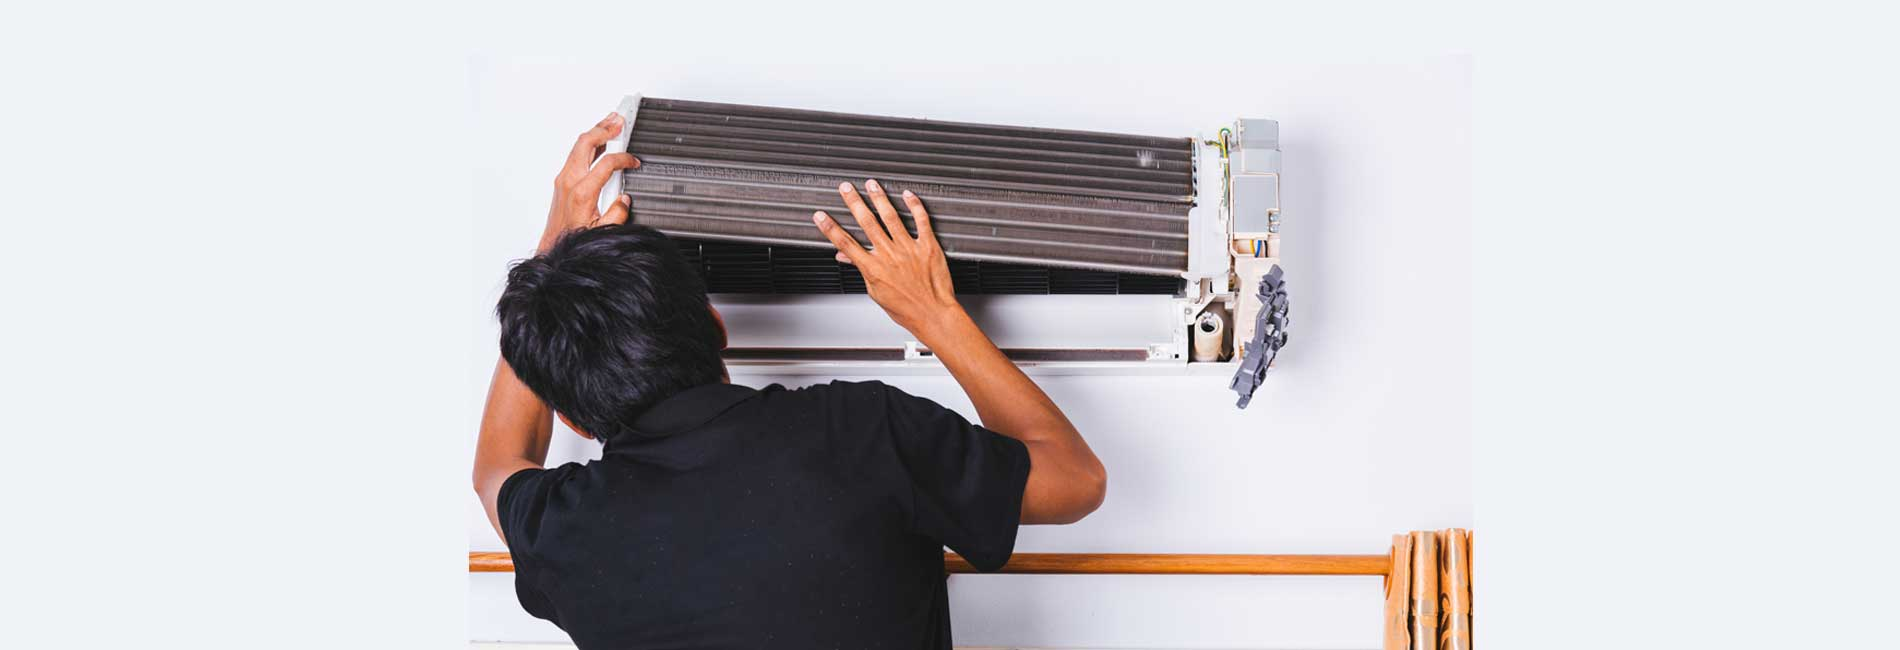 Bluestar Air Condition Repair in Sunnambu kolathur